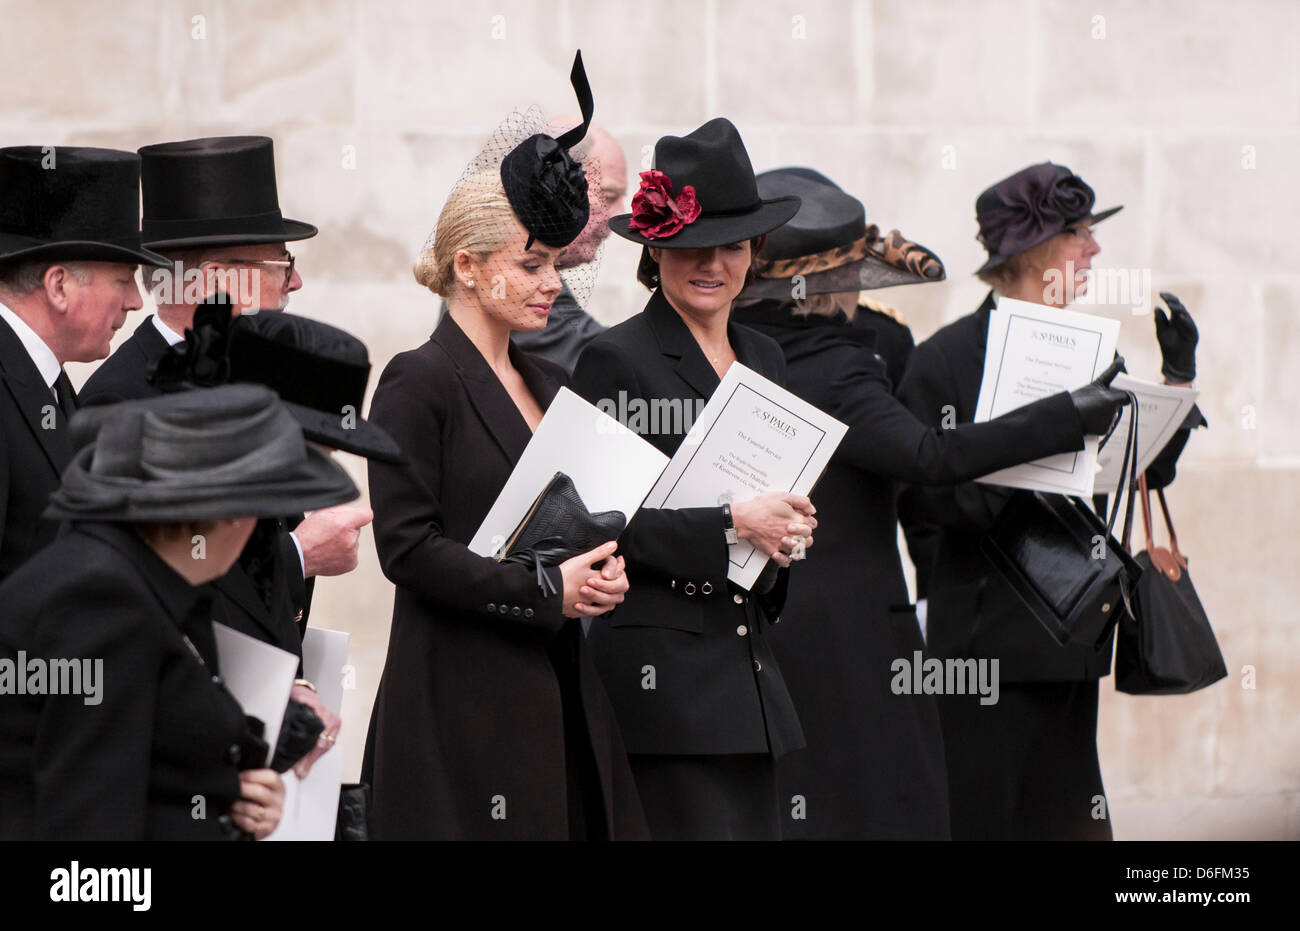 London, UK, 17 Apr. 2013.  Singer, Katherine Jenkins, is amongst the mourners as they leave the funeral service Stock Photo